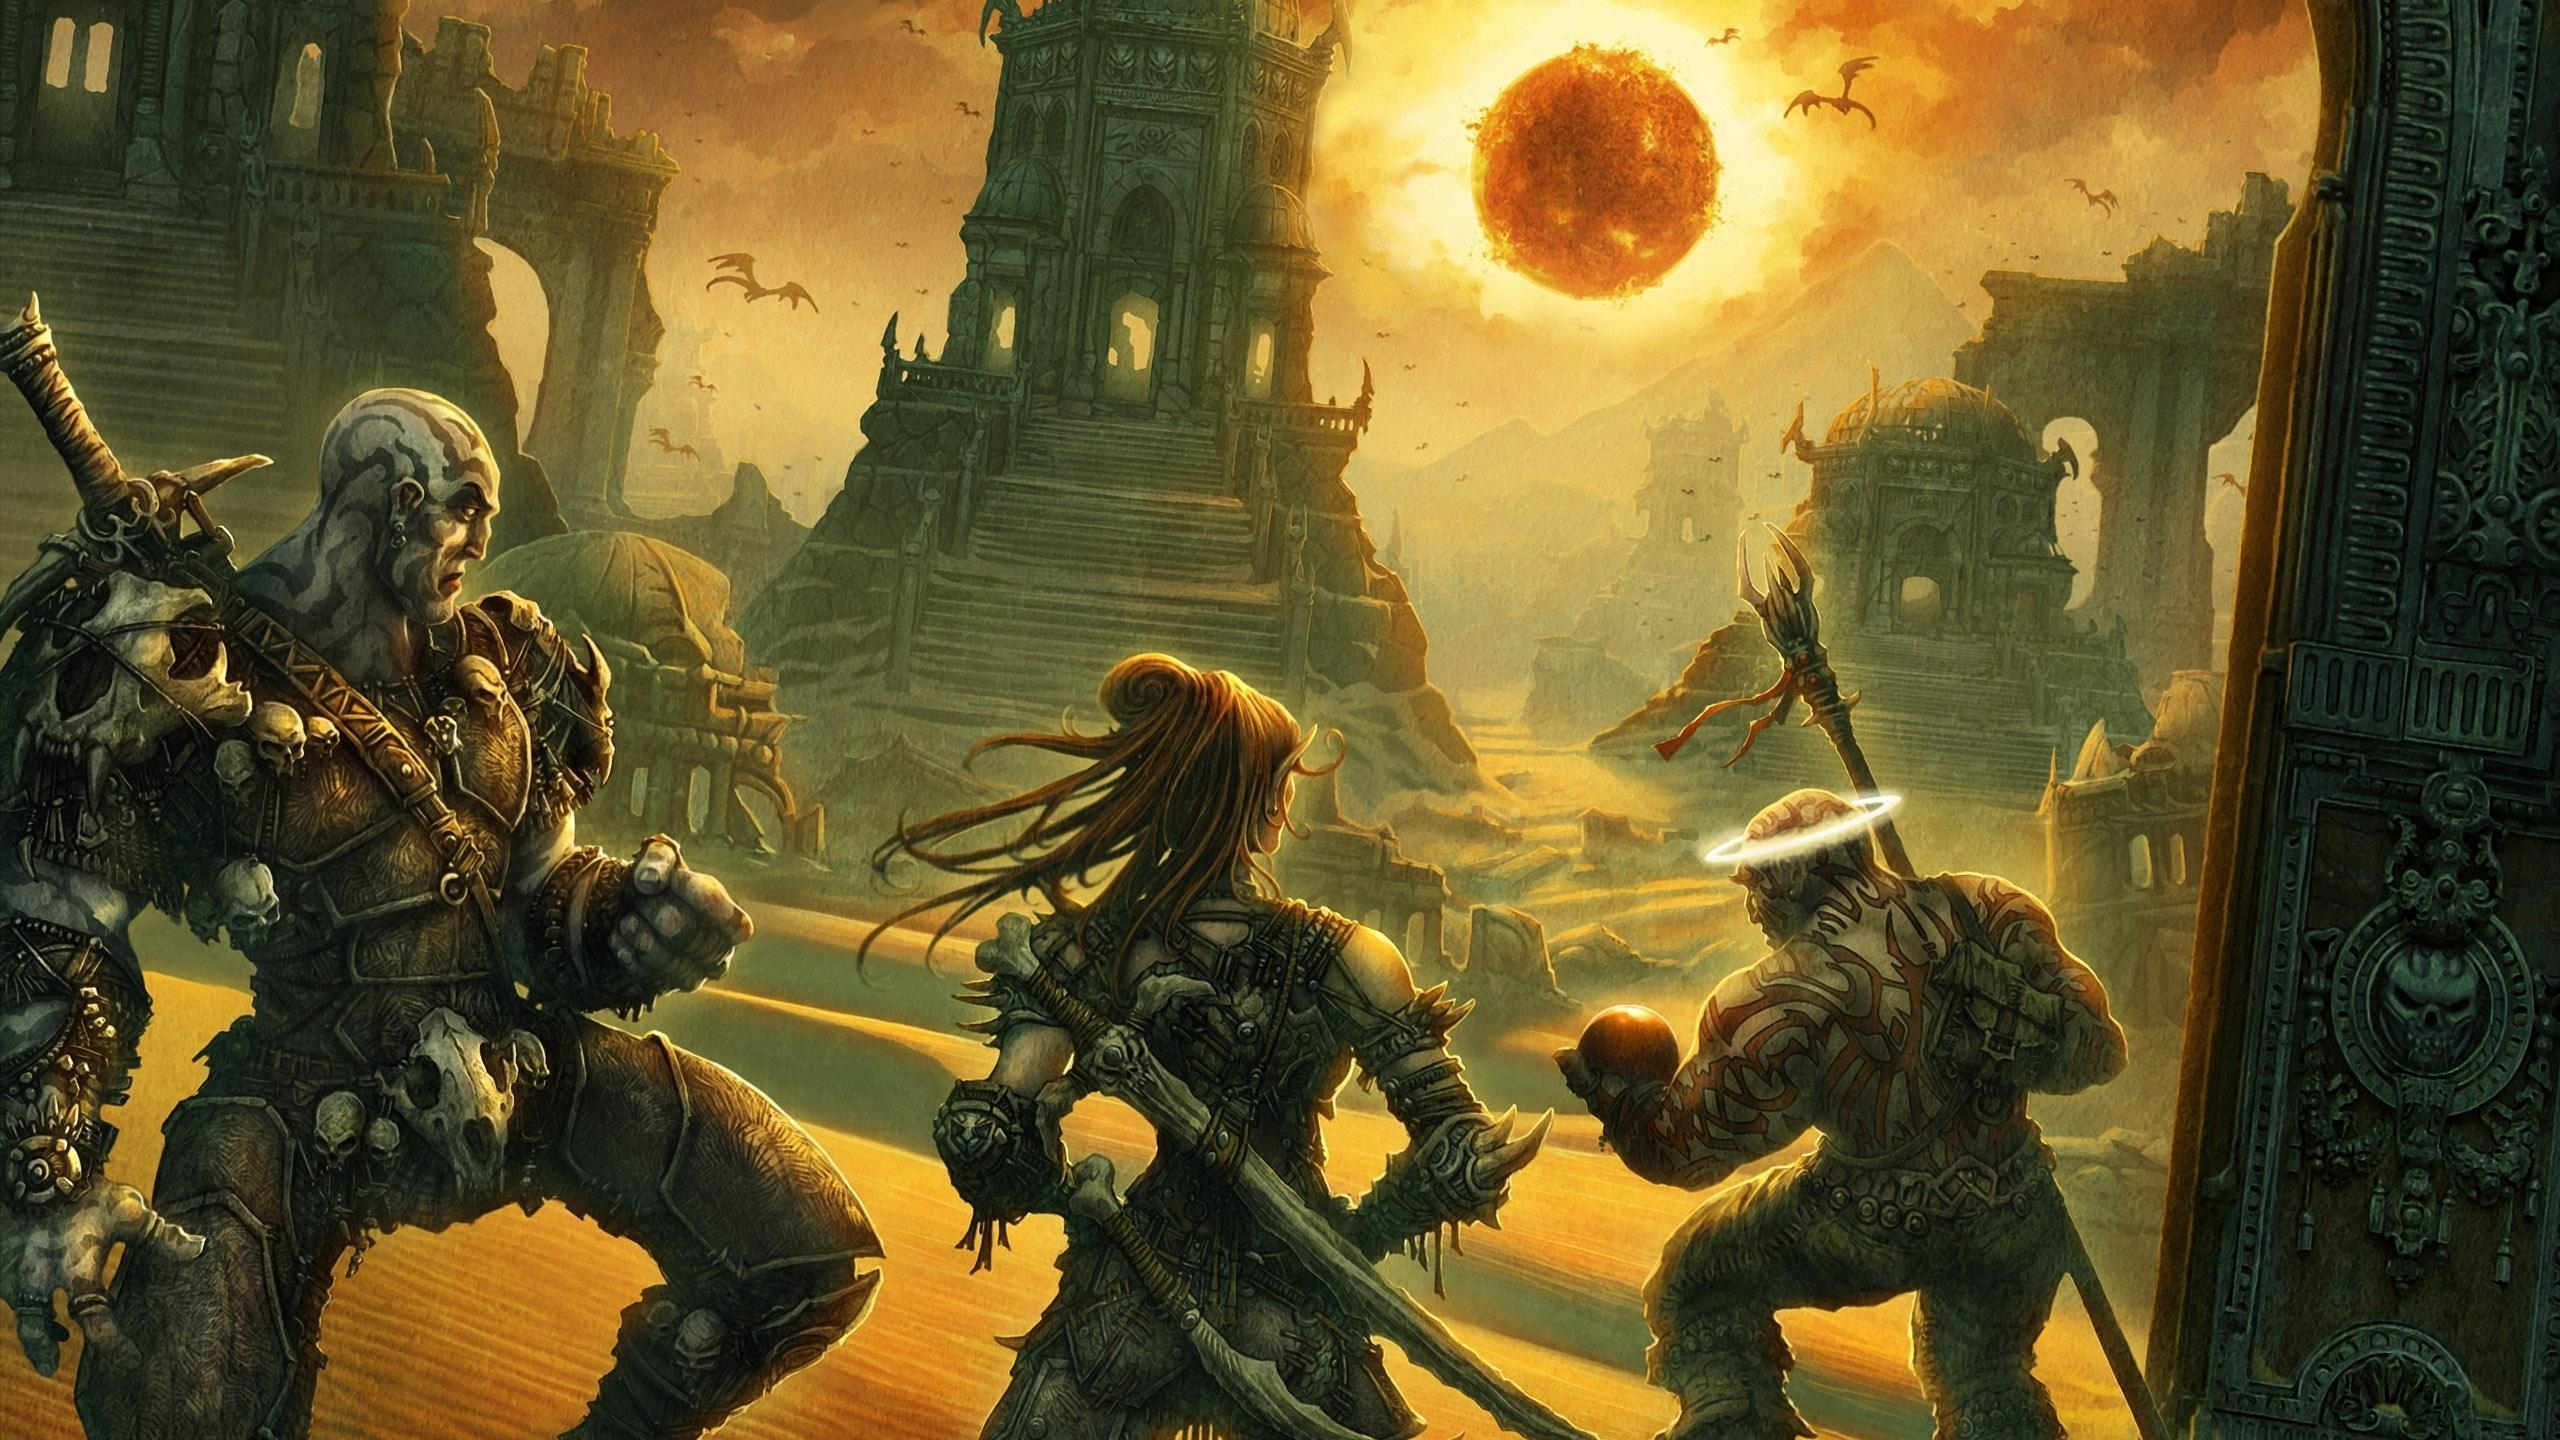 Dungeons Dragons Hd Wallpaper Background Image 2560x1440